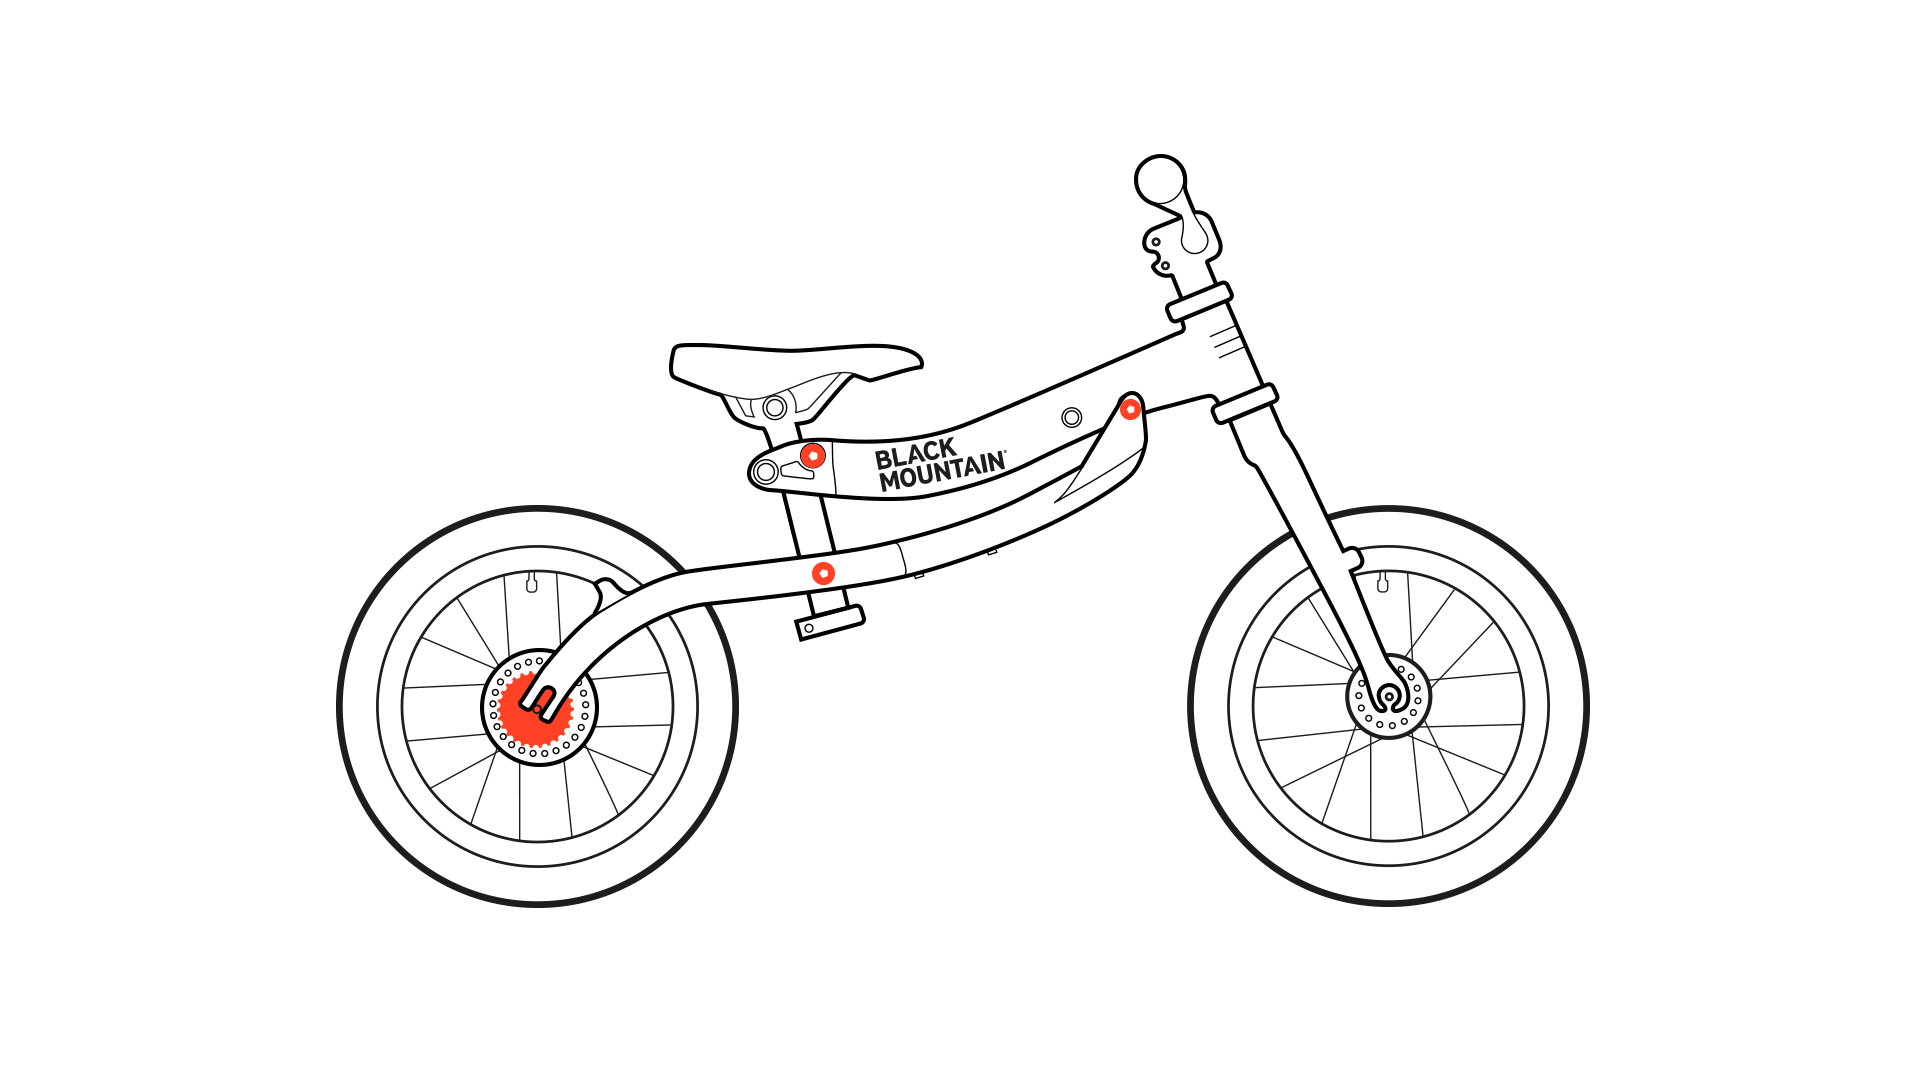 Balance bike diagram